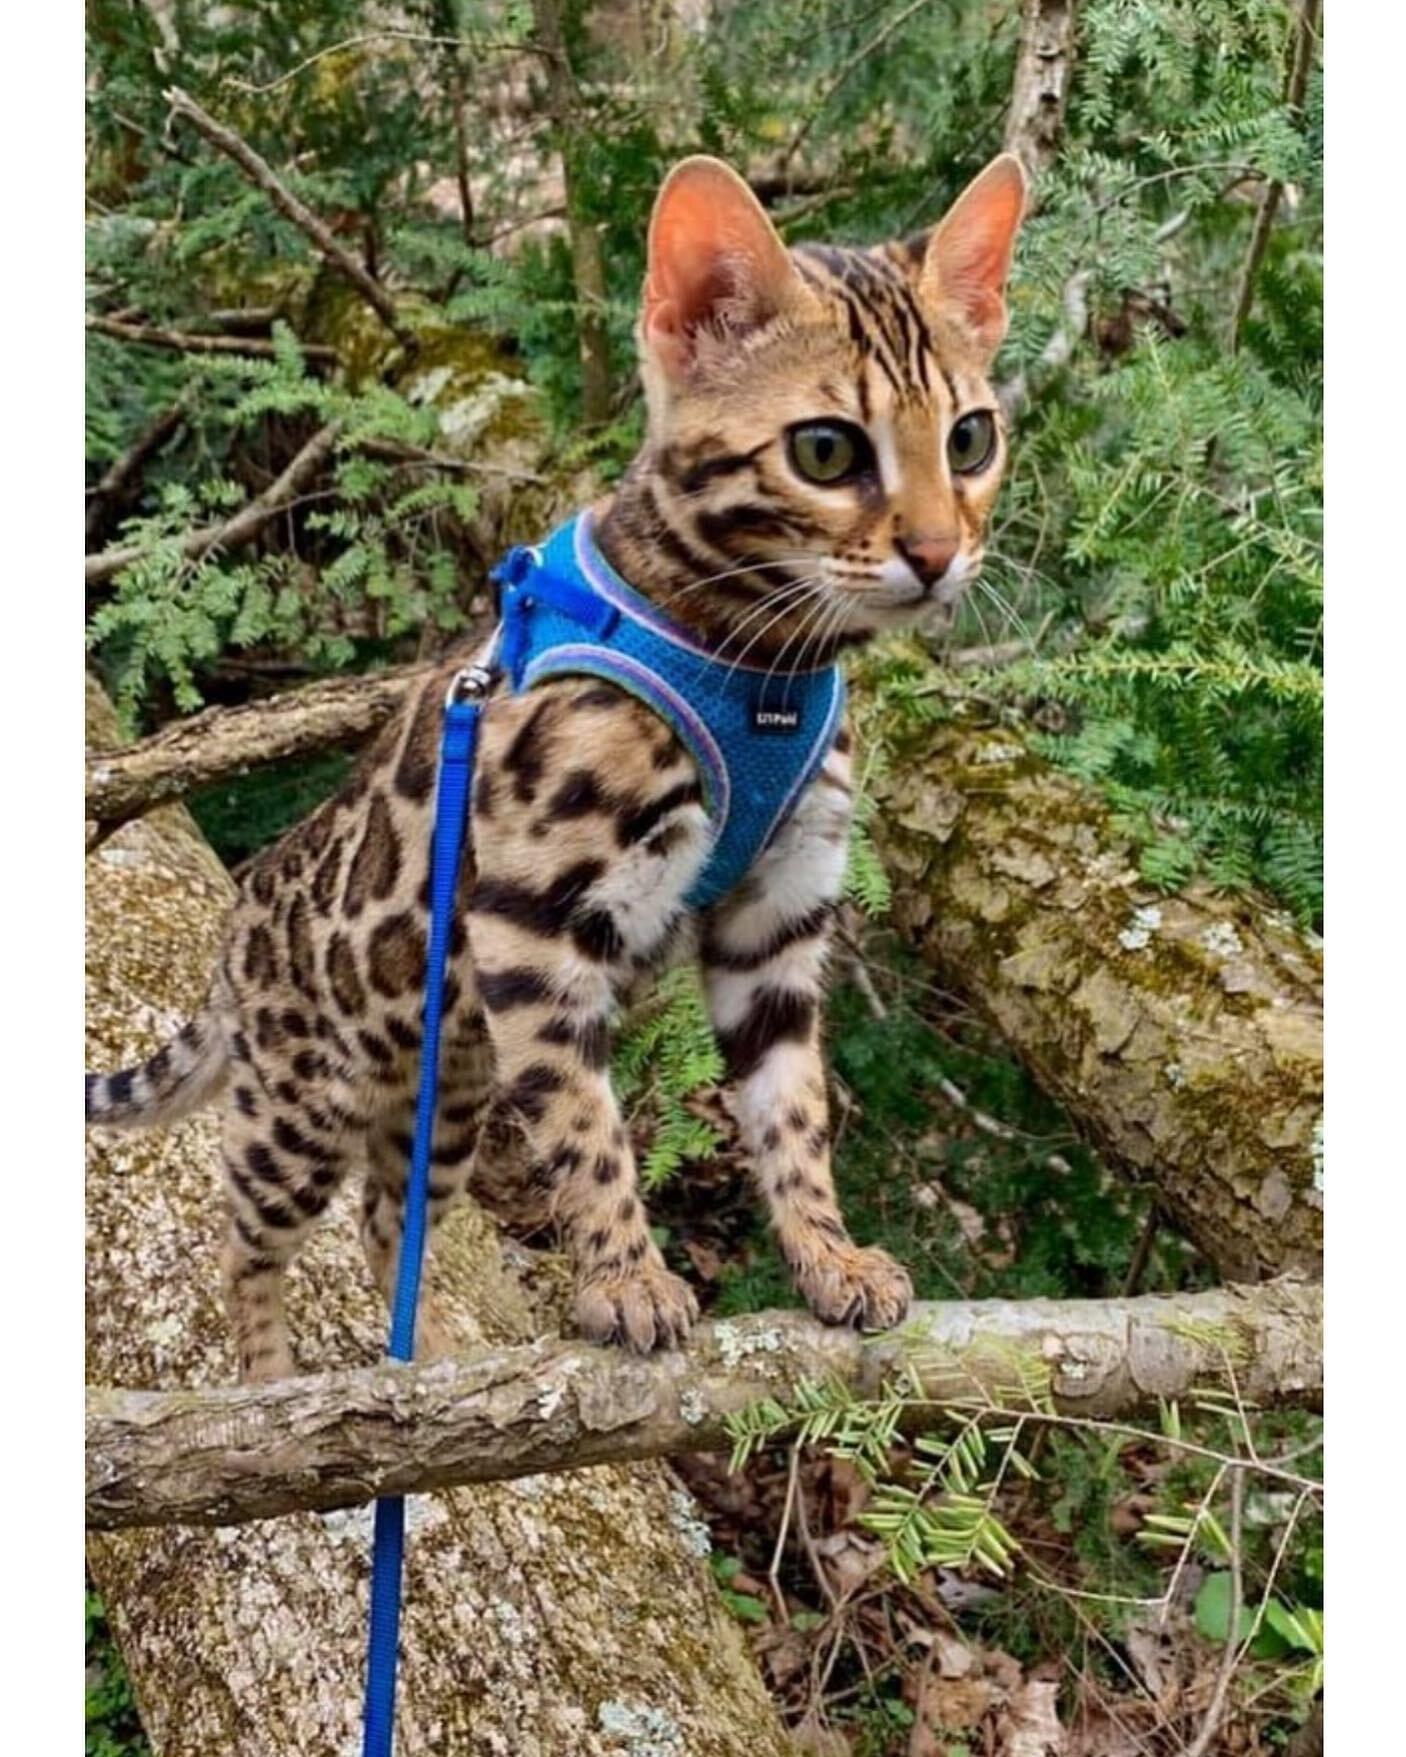 Expert Savannah Cat Breeders F1 Savannah Kittens